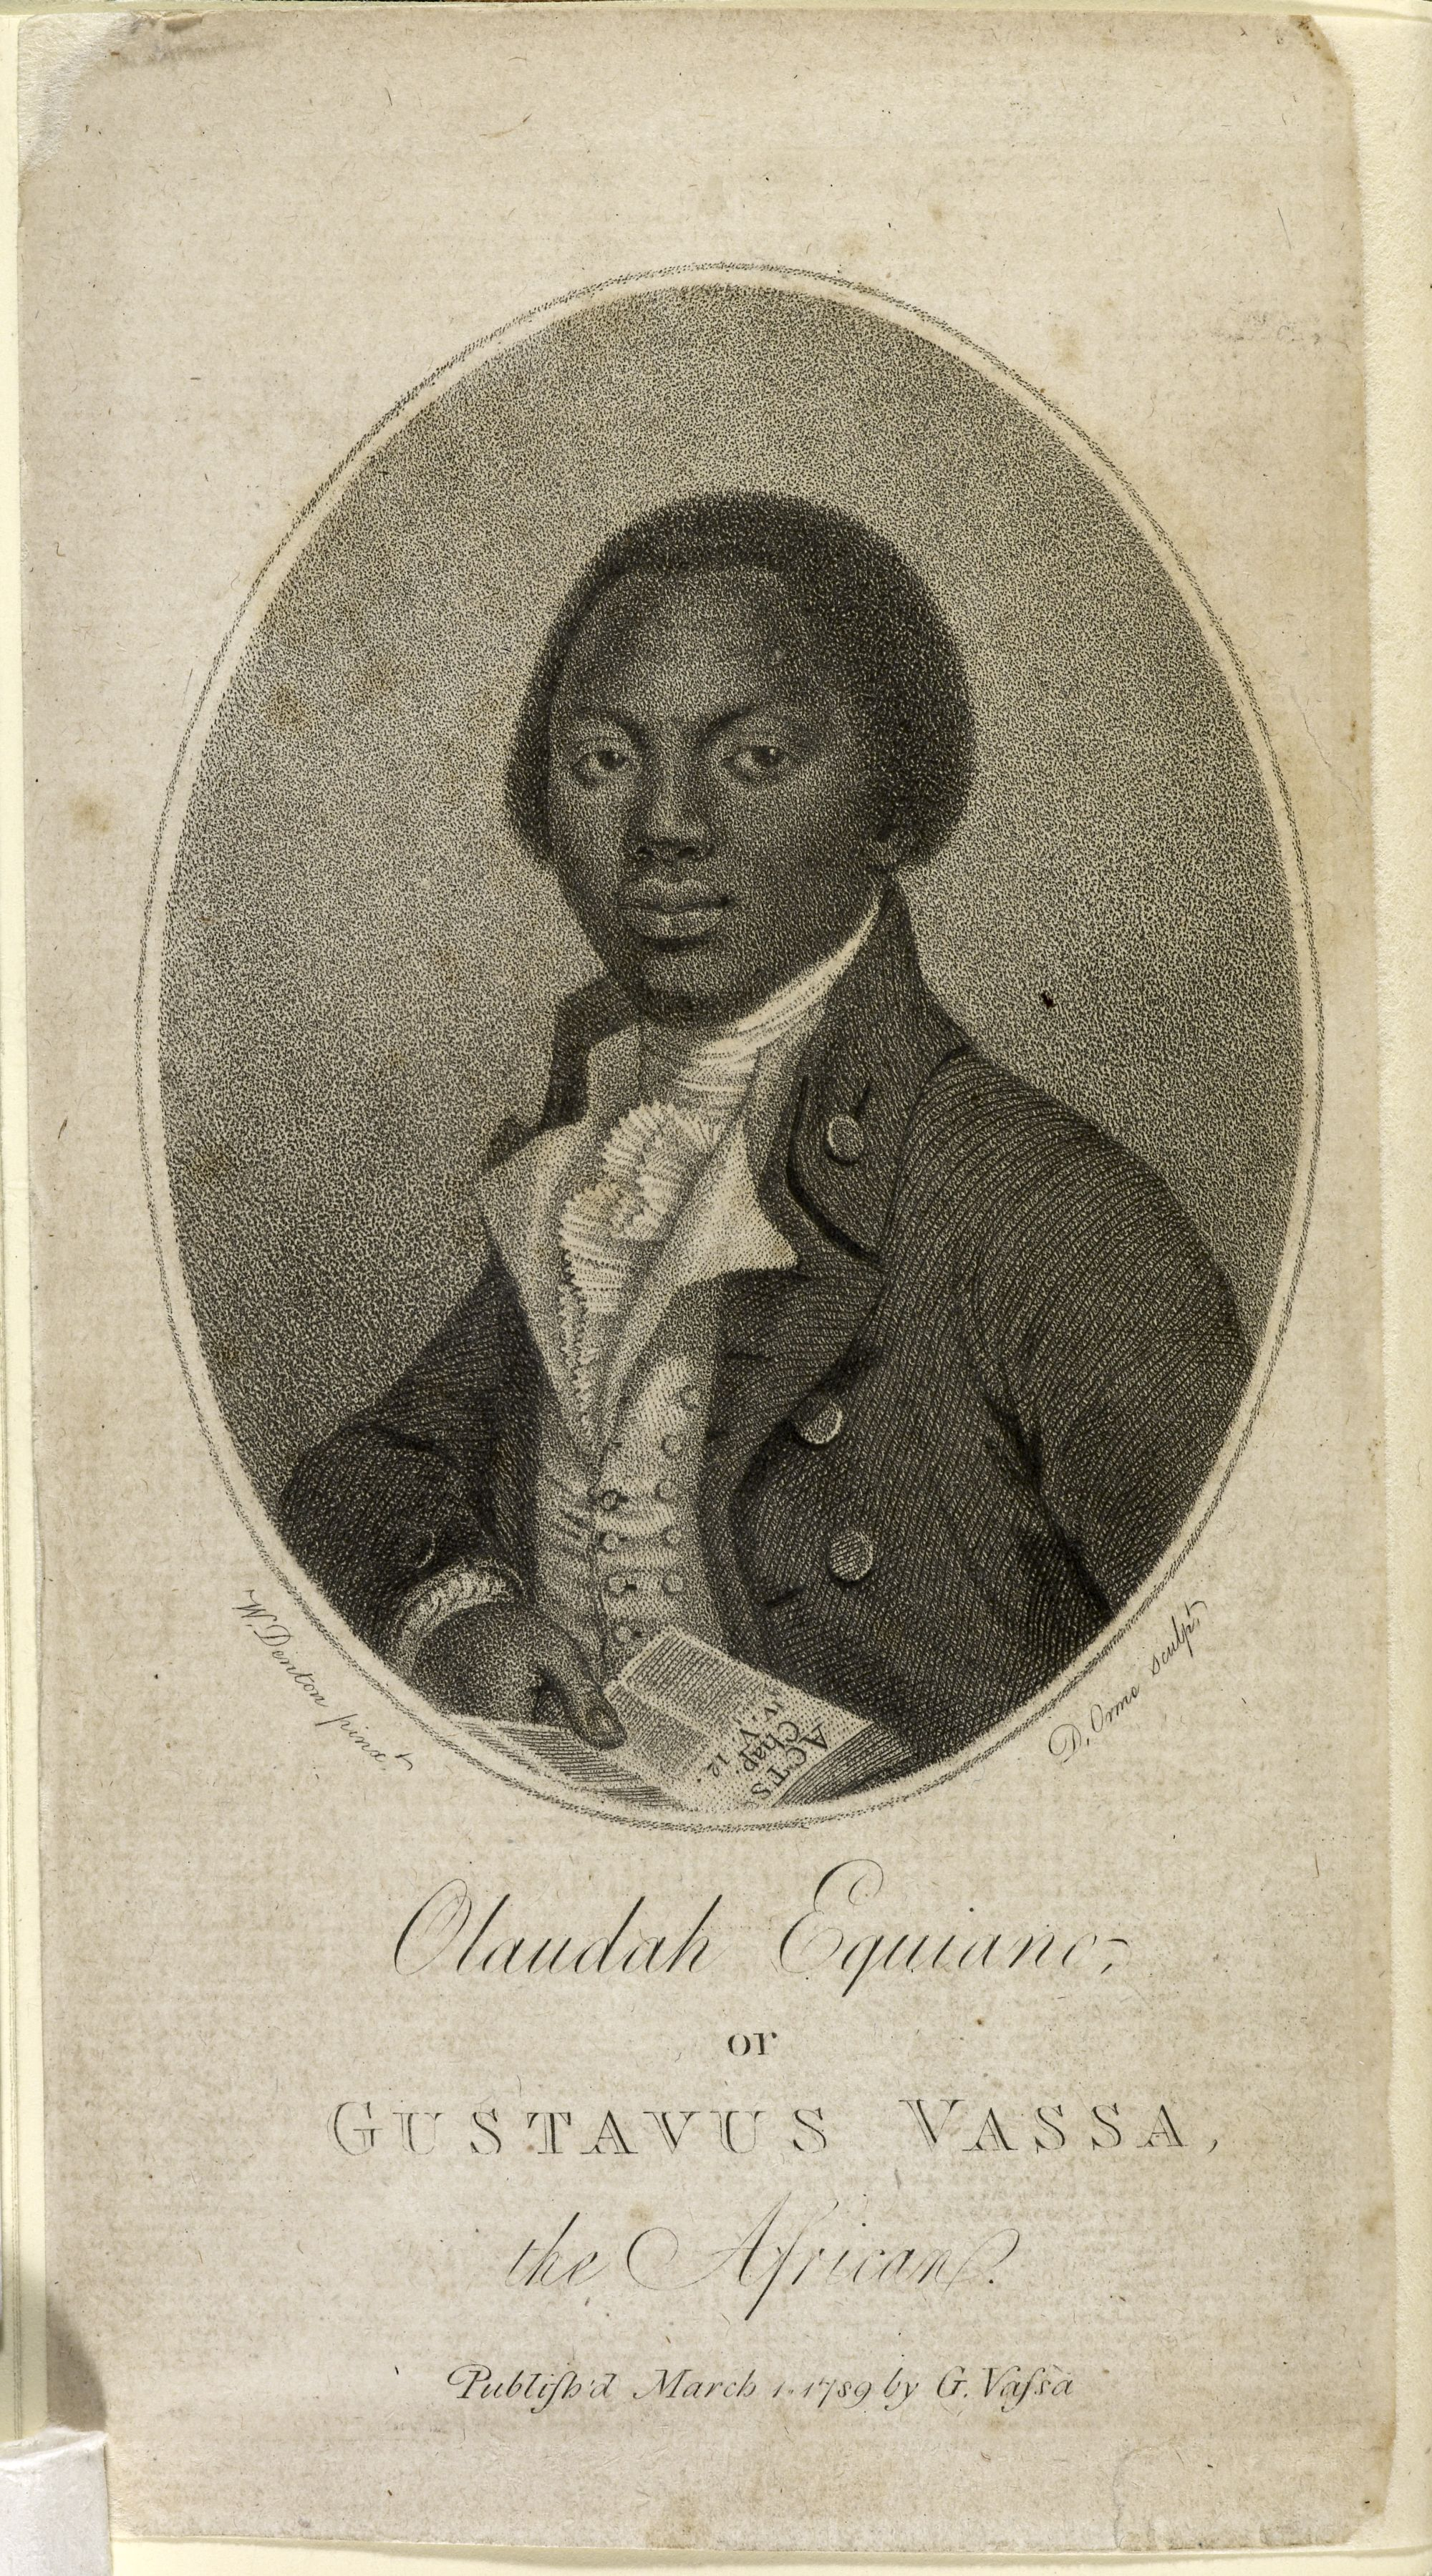 Frontispiece of Olaudah Equiano, The interesting narrative of the life of O. Equiano, or G. Vassa, the African ... written by himself